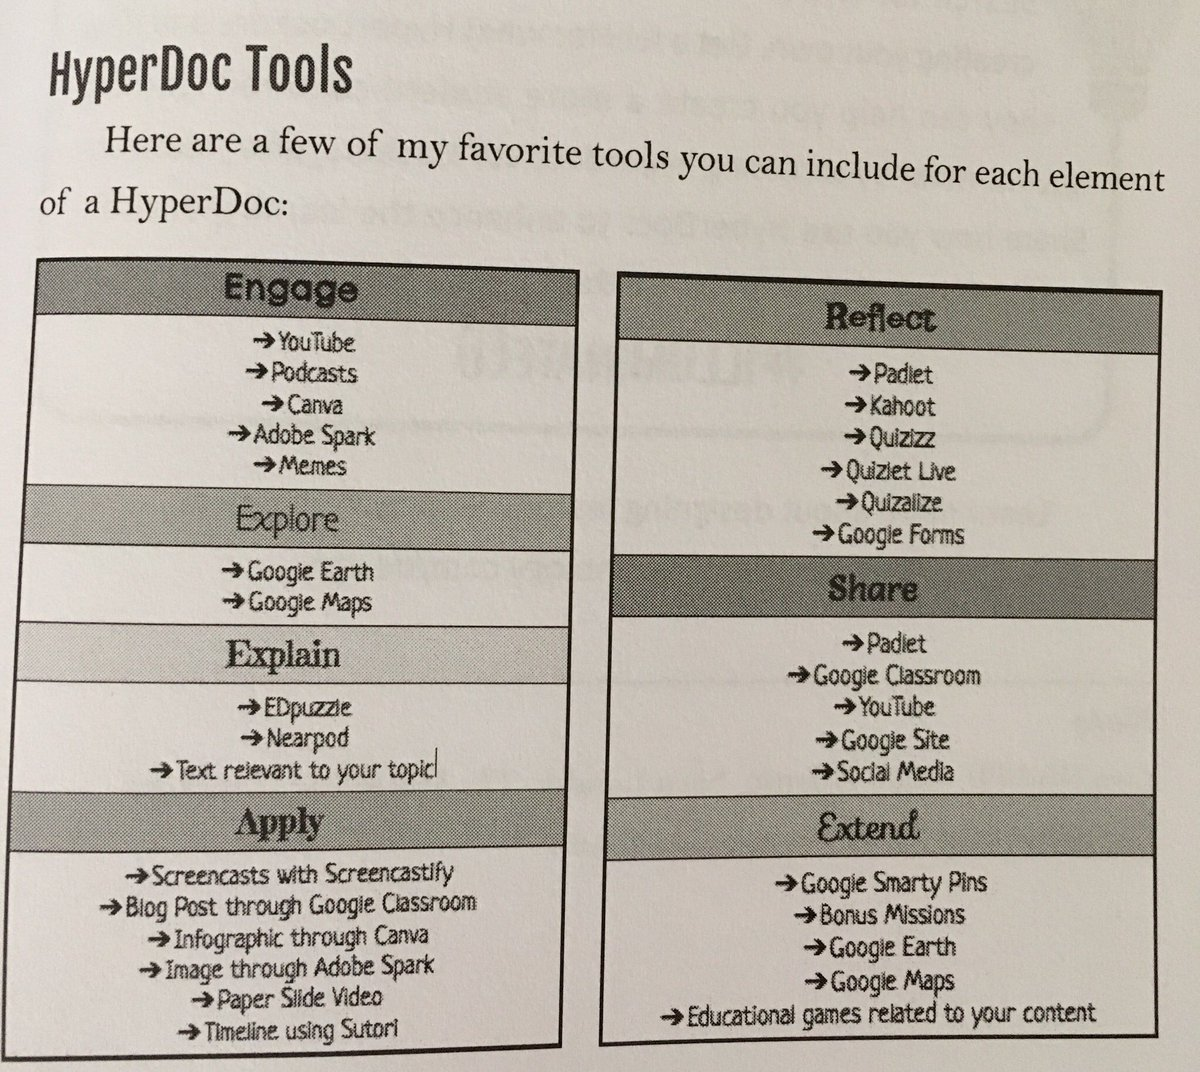 Love the #hyperdoc resources @Bethany_Petty shared in #IlluminateED! #edtech #edchat